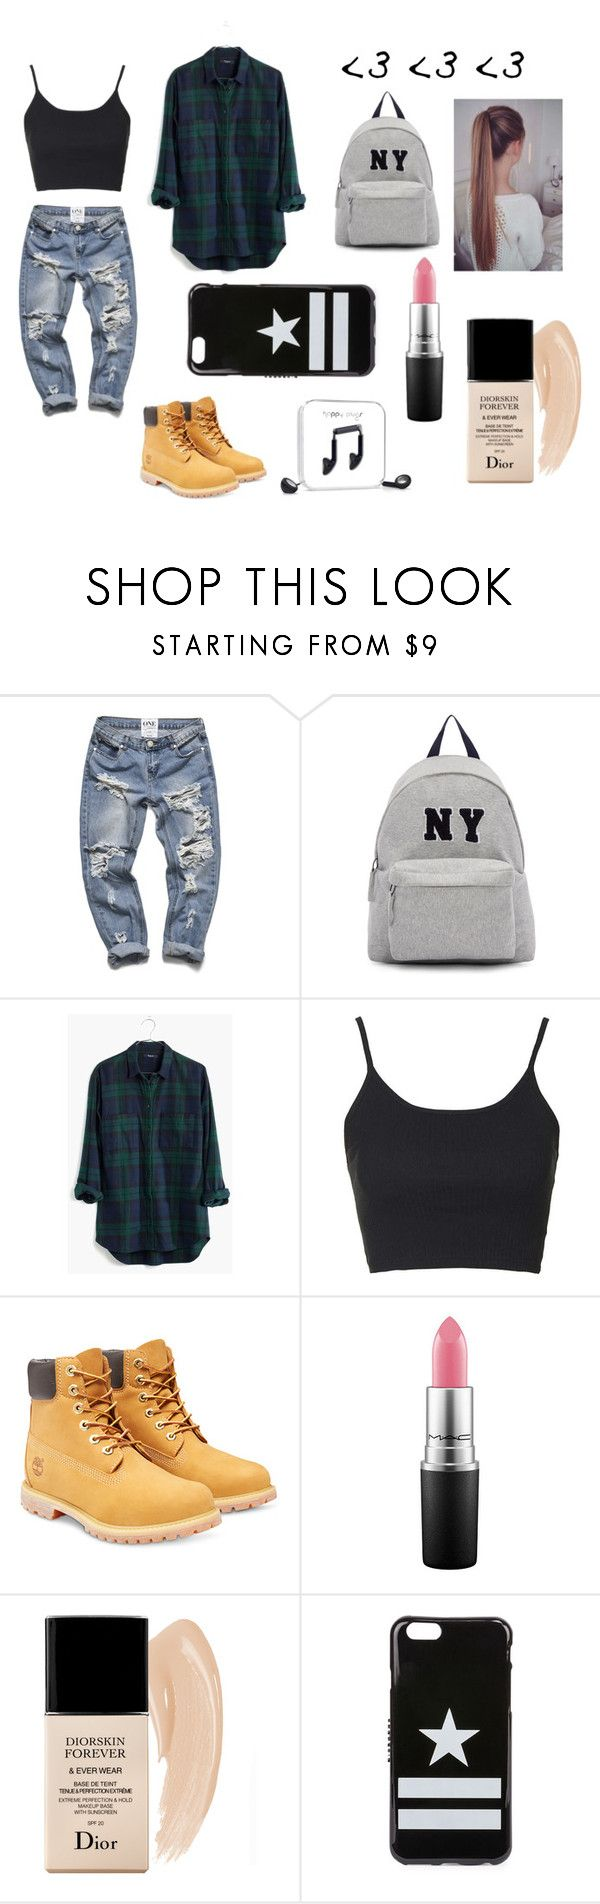 """Solo tu"" by lizzyrivas on Polyvore featuring Belleza, Joshua's, Madewell, Topshop, Timberland, Christian Dior, Givenchy y Happy Plugs"